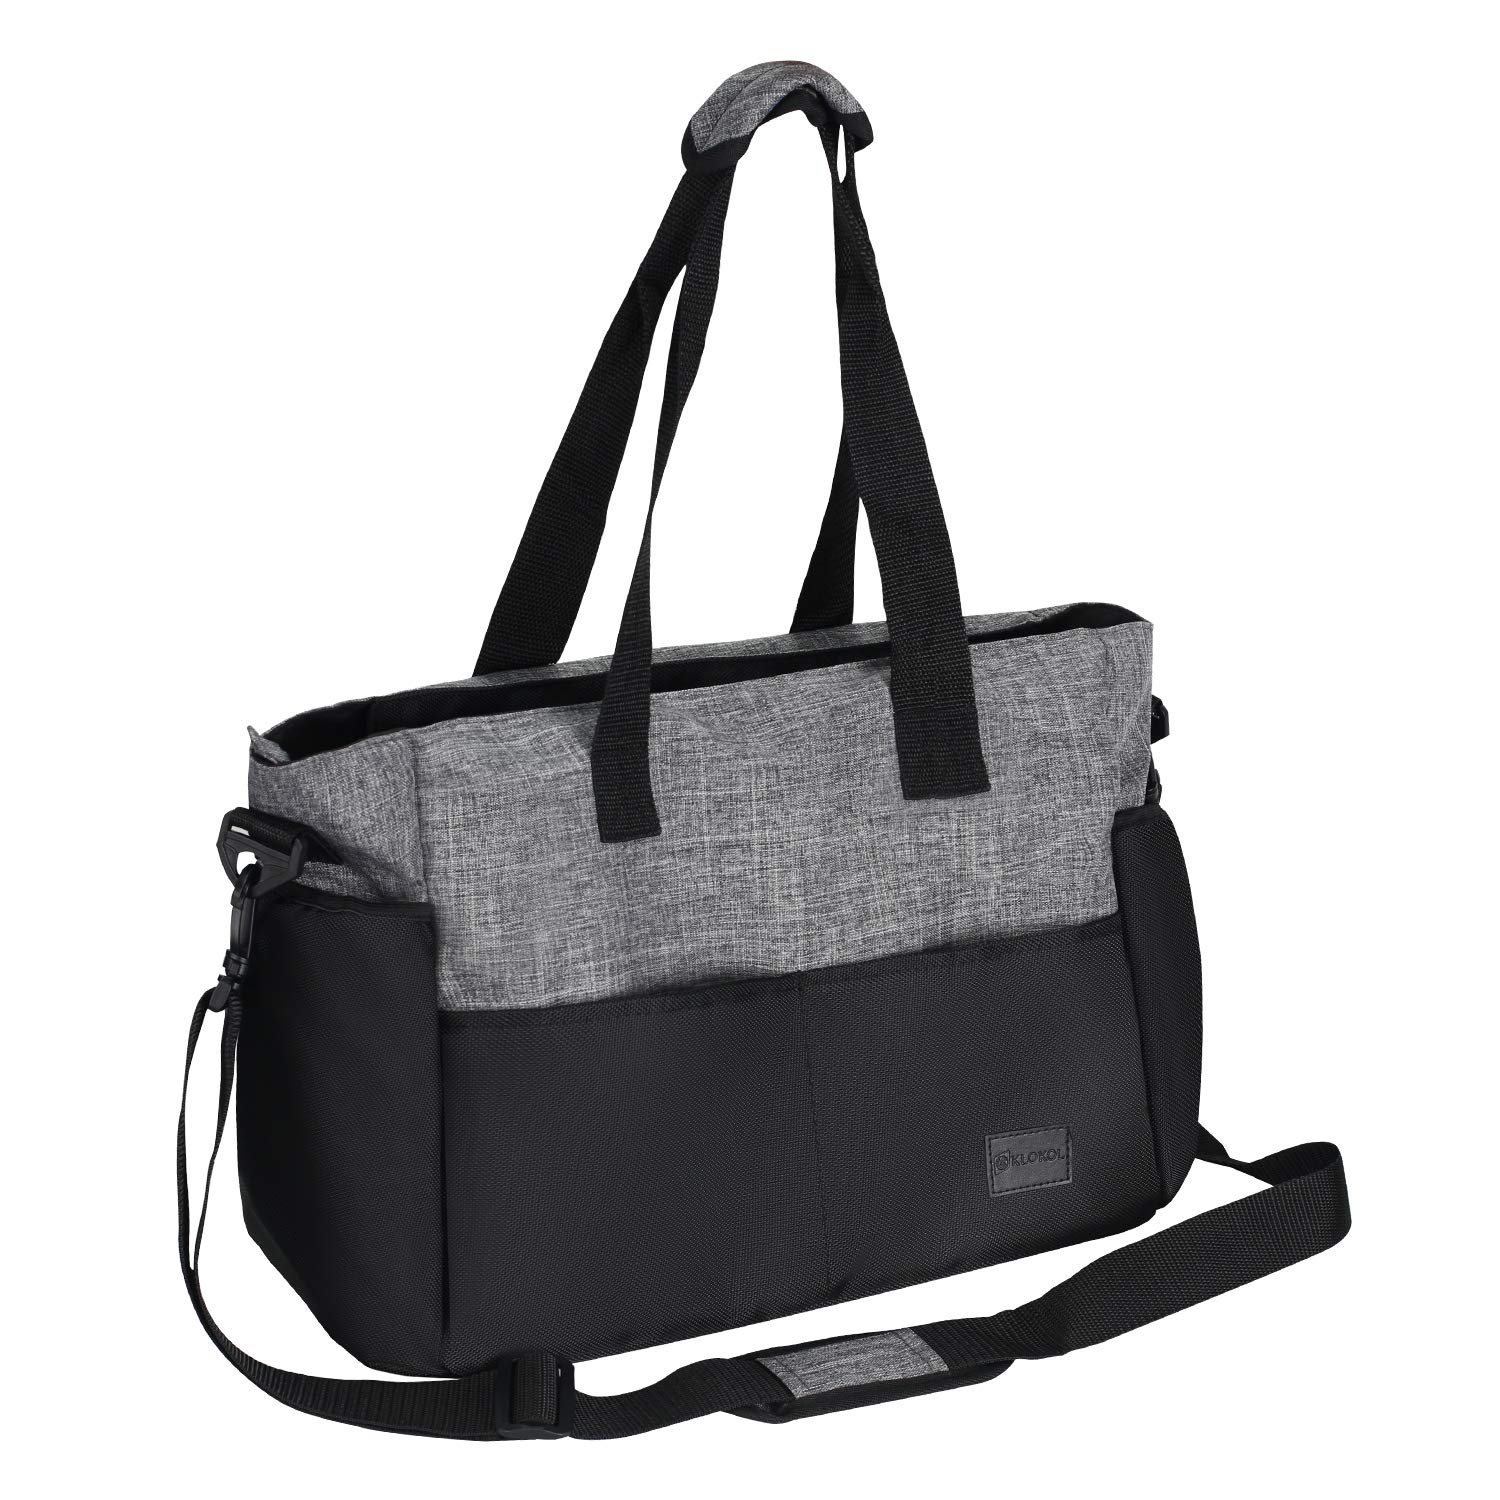 Diaper Bag, Redan Large Baby Bags Tote Organizer Insert Travel Nappy Bags Style with Shoulder Strap and 10 Pockets for Mom, Dad, Boys and Girls, Stroller (Grey Black) by Redan